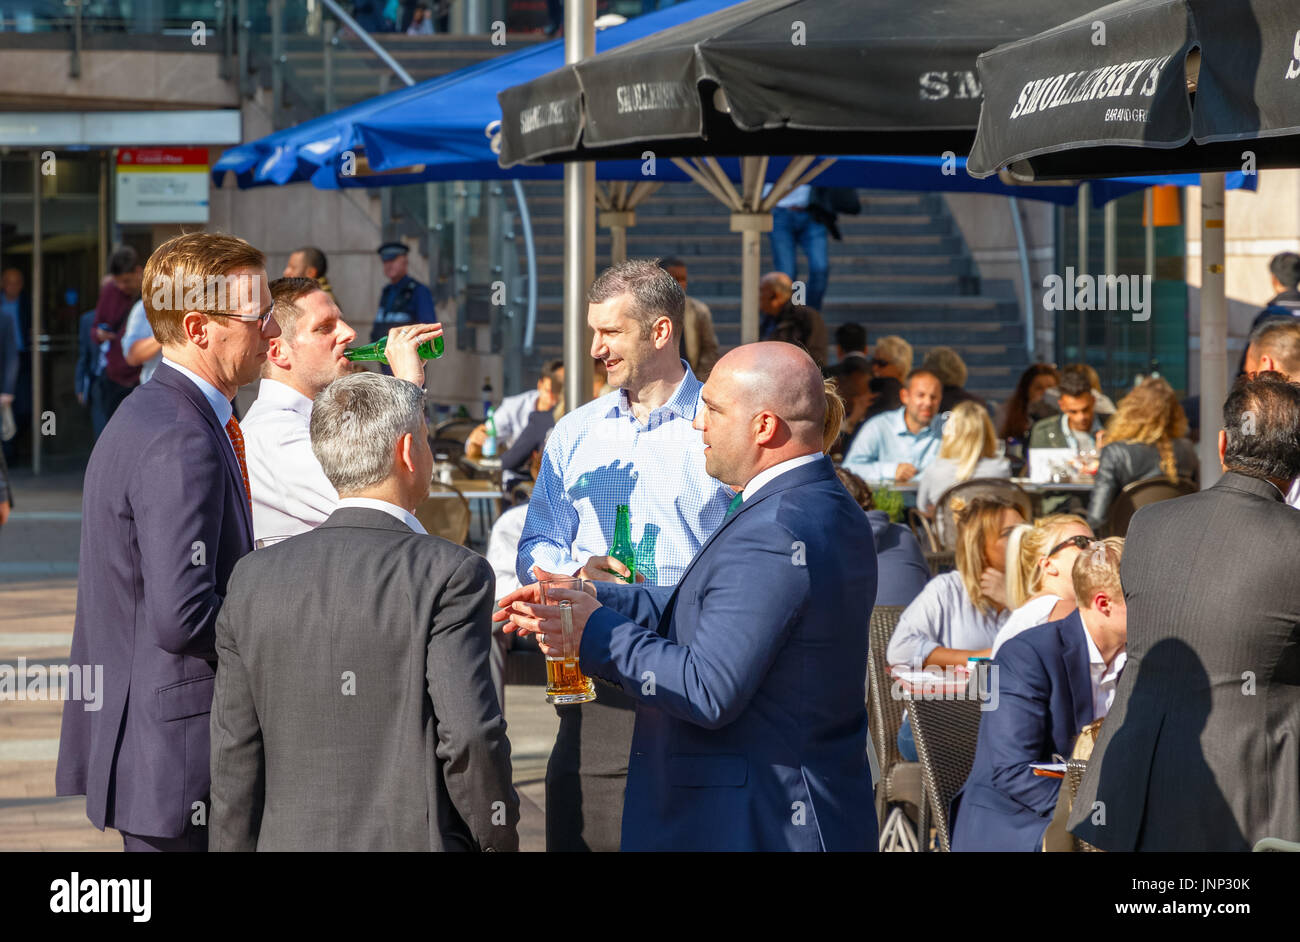 London, UK - May 10, 2017 - Group of businessmen drinking at a outdoor bar in Canary Wharf - Stock Image